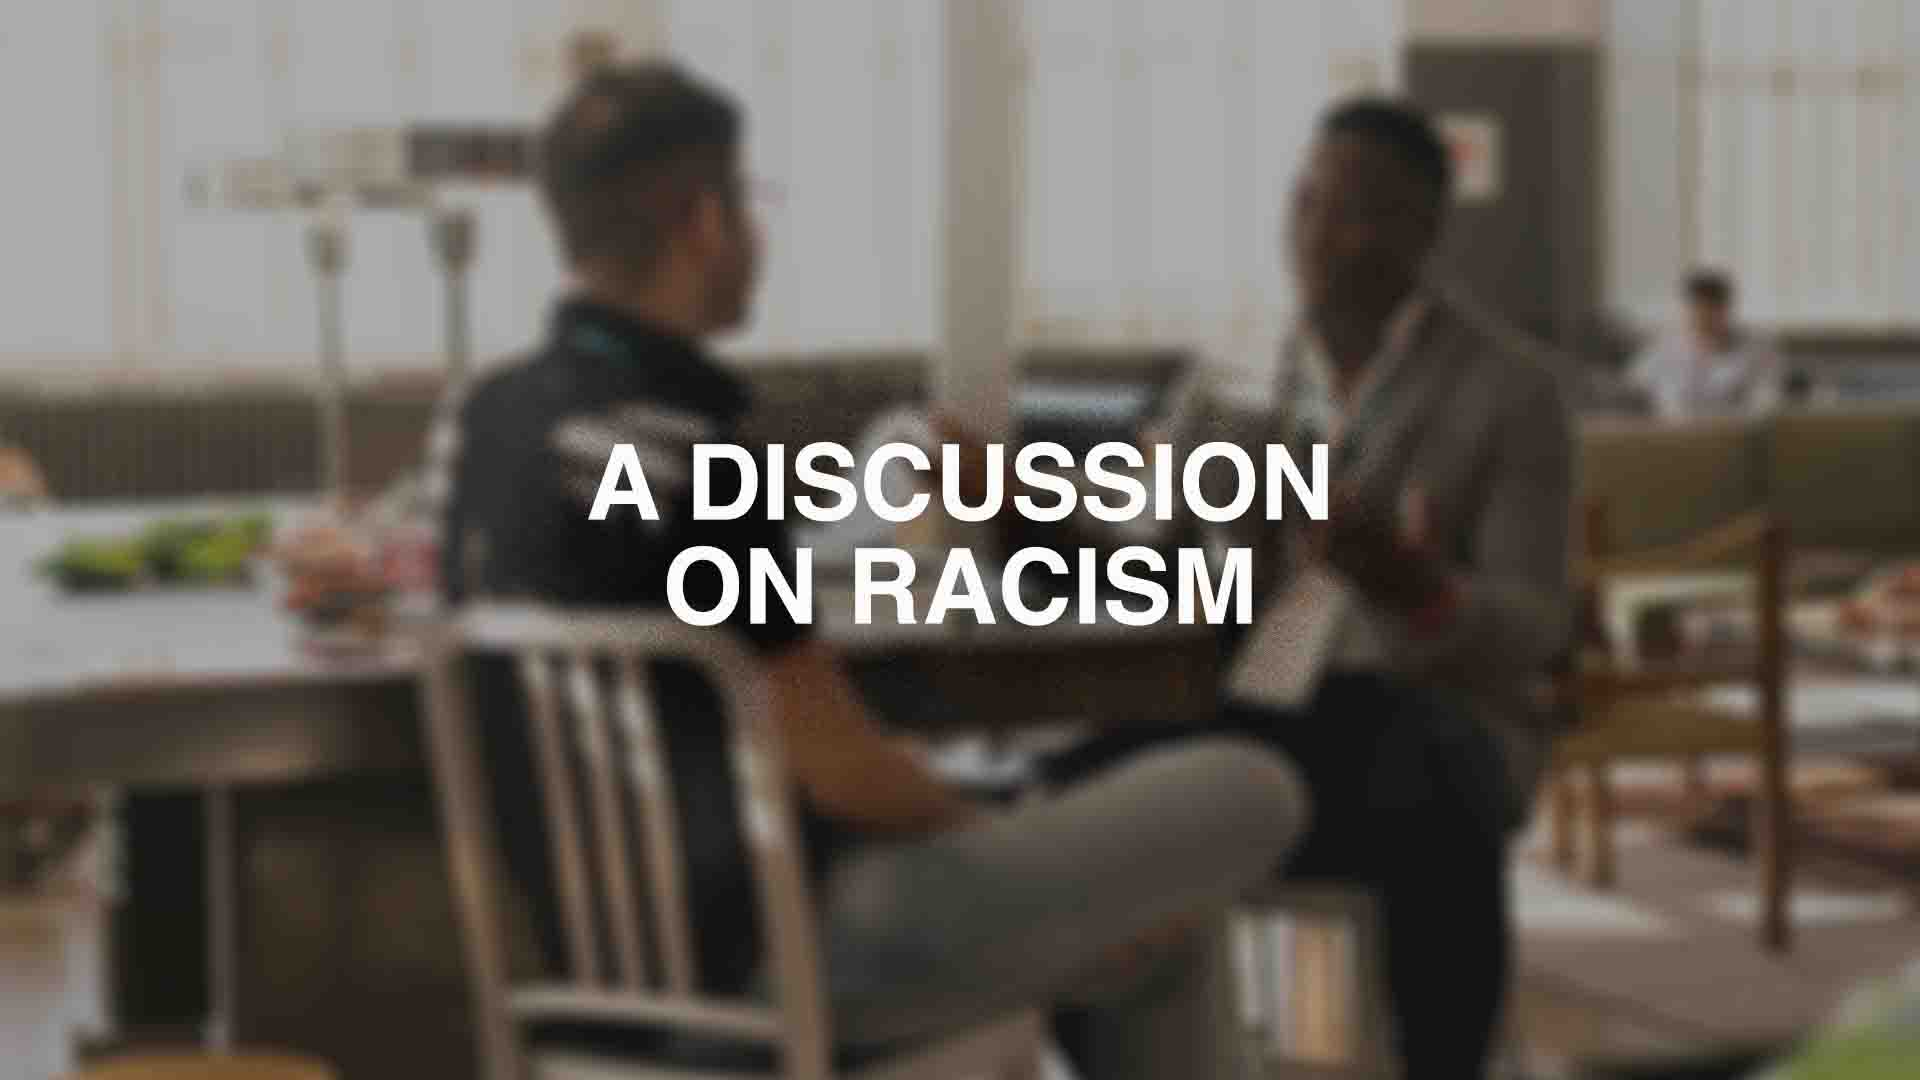 A Discussion on Racism